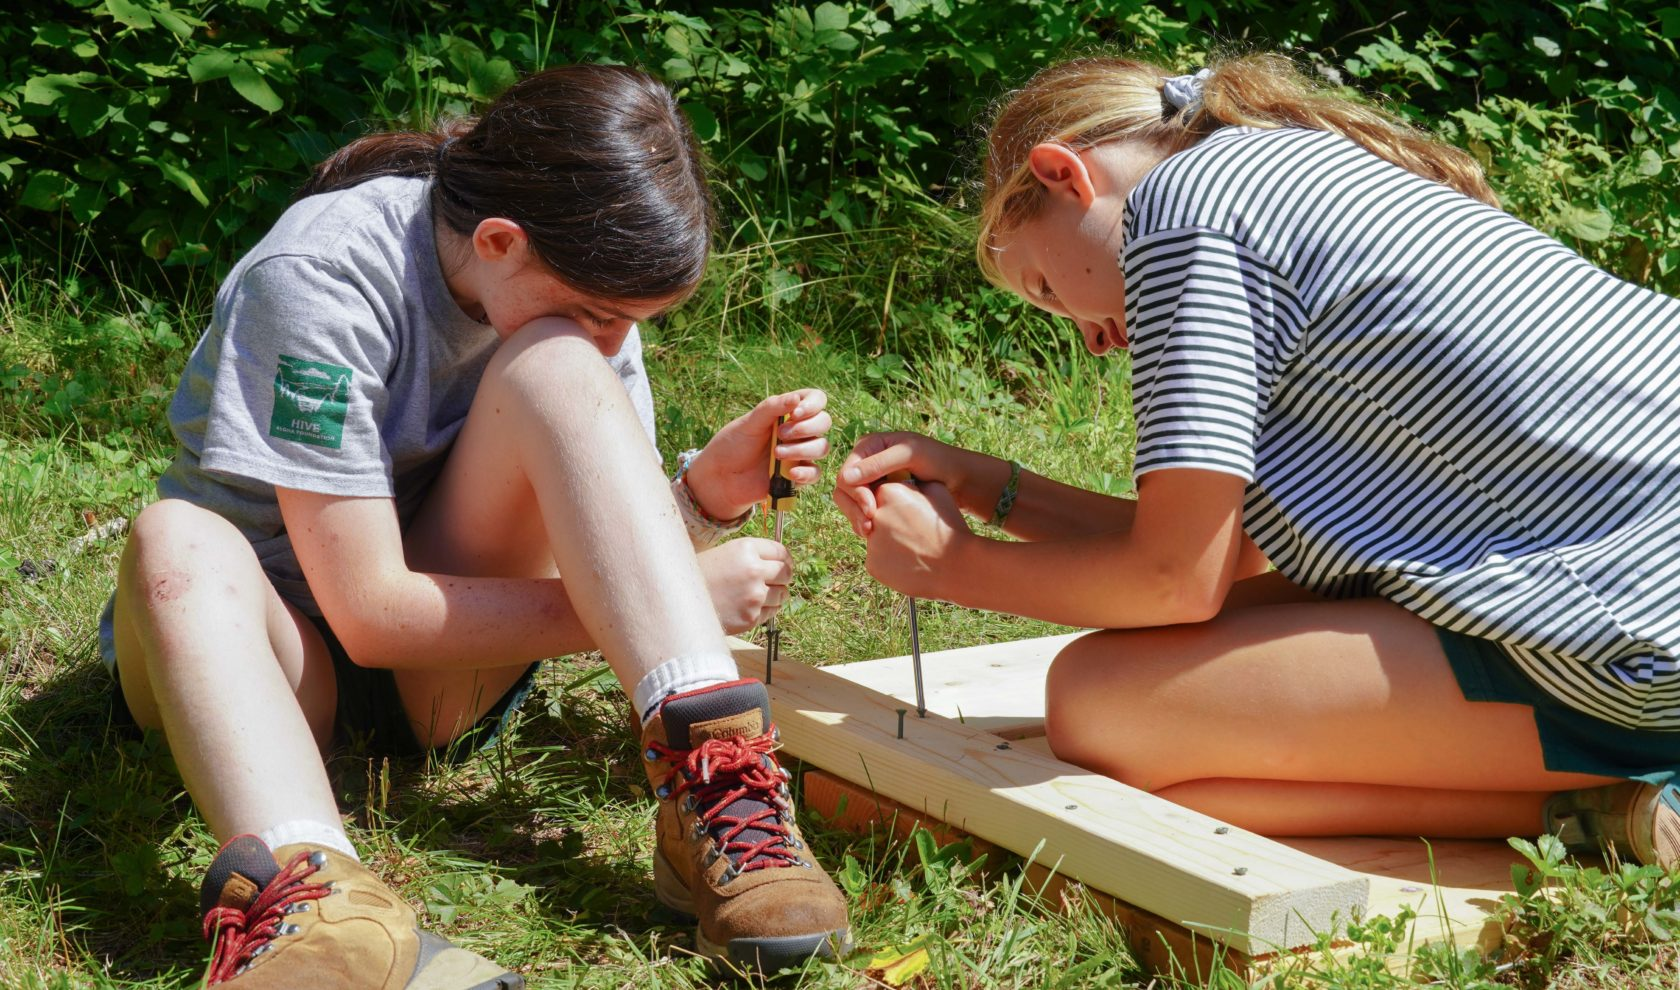 Two girls working with wood and nails.